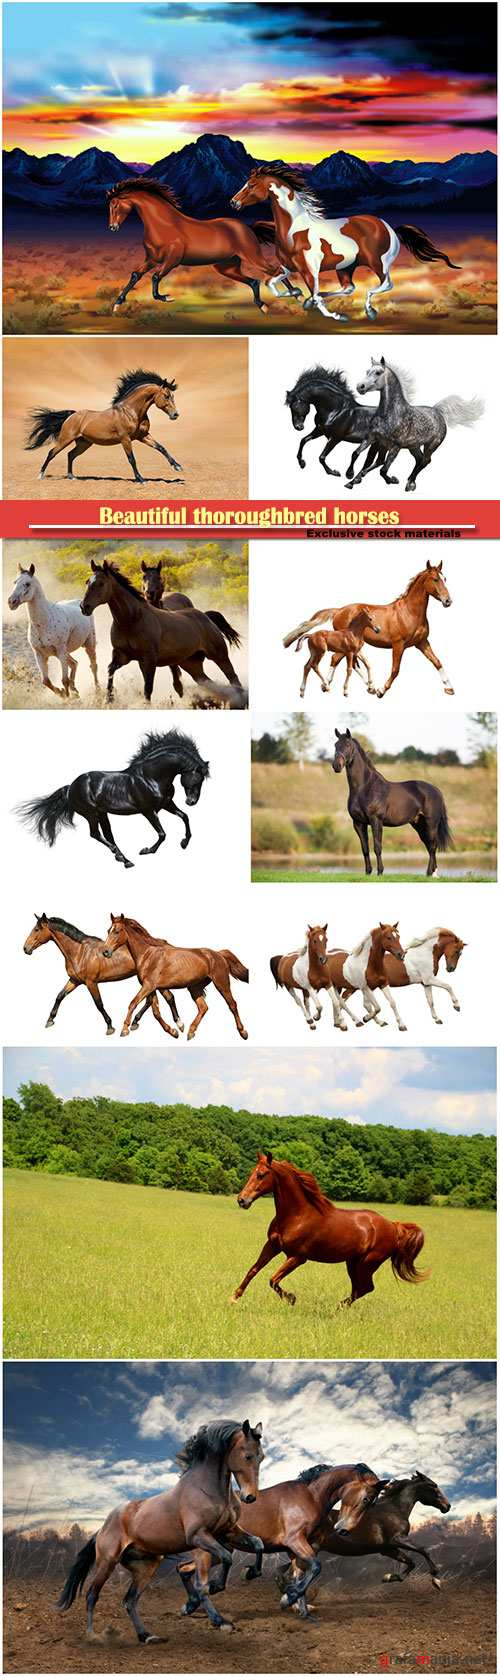 Beautiful thoroughbred horses